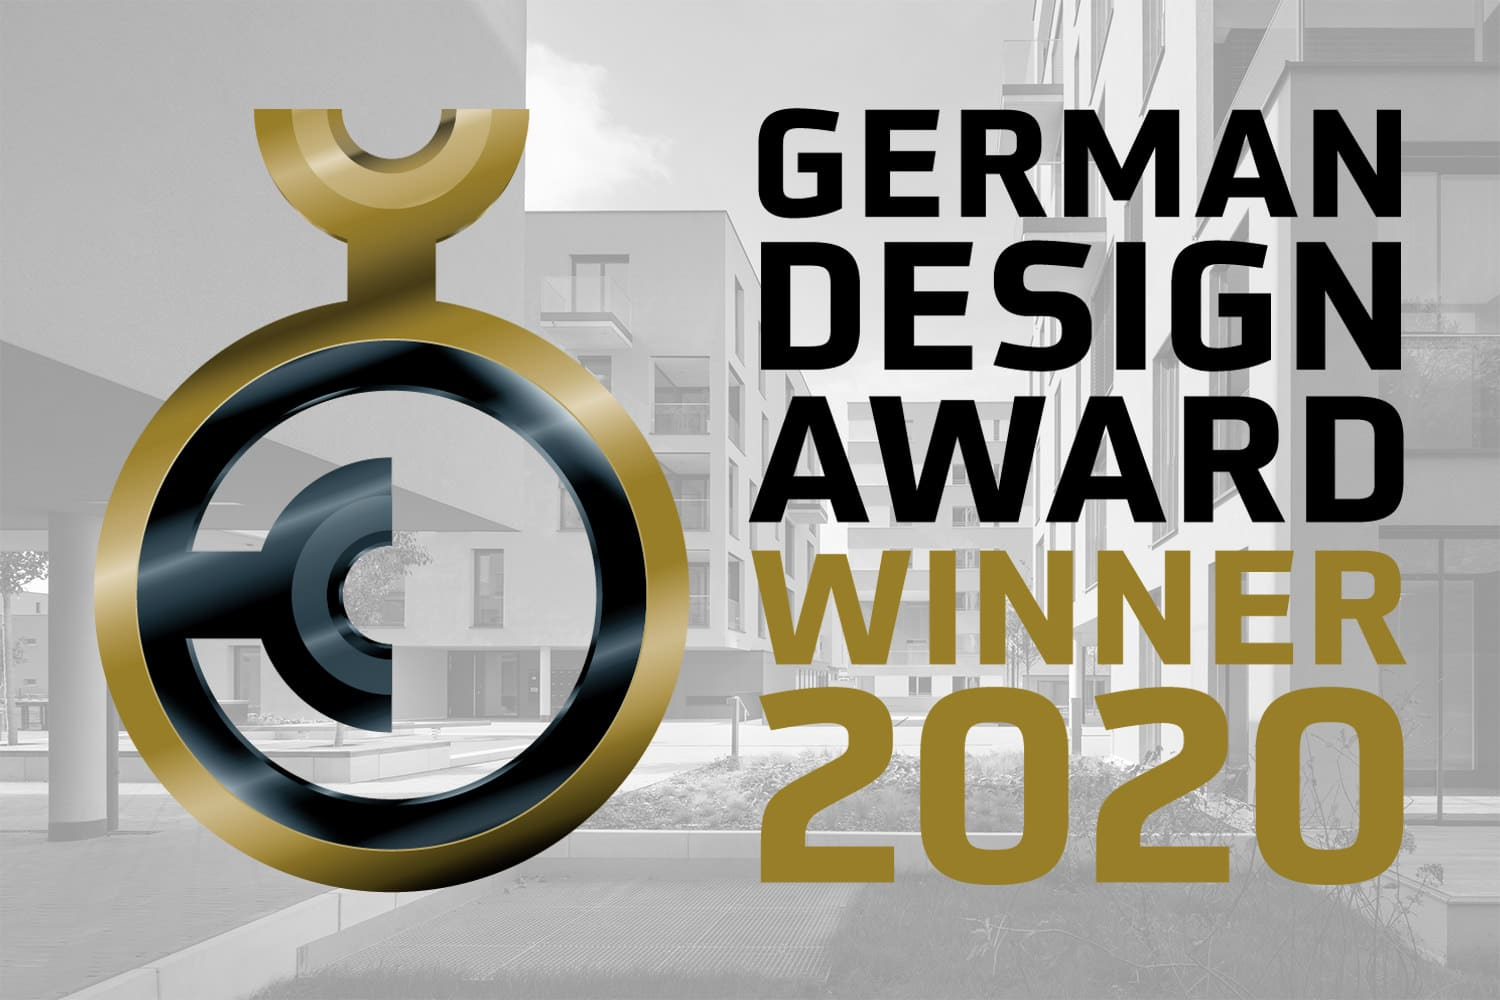 2019, Winner German Design Award 2020 | Quartier Riedenburg